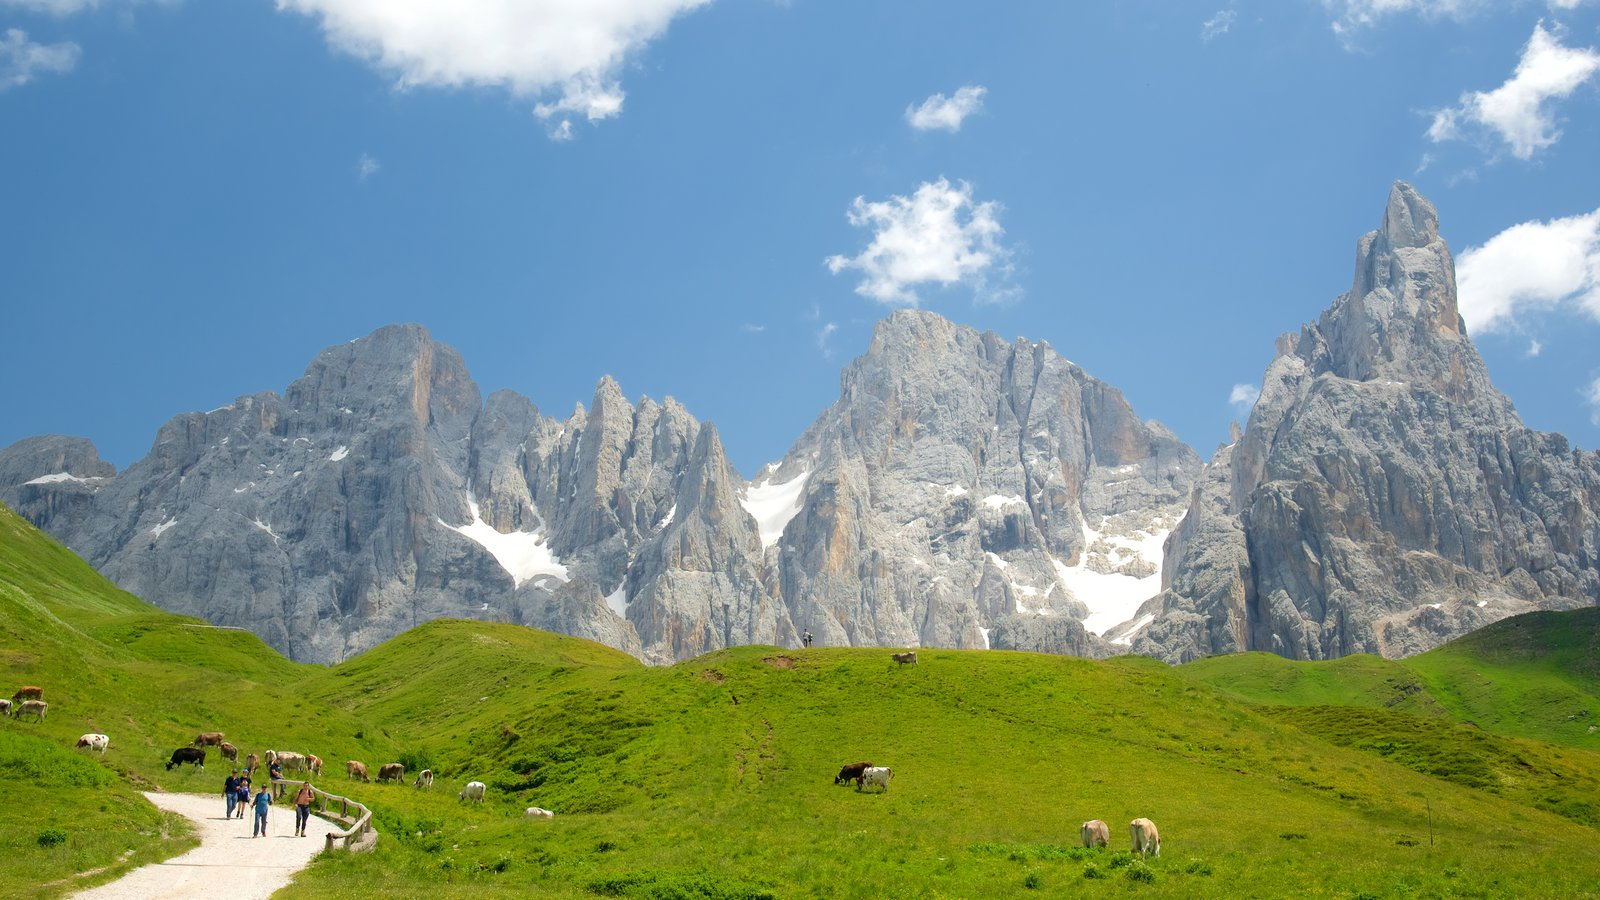 Passo Rolle which includes land animals, mountains and farmland